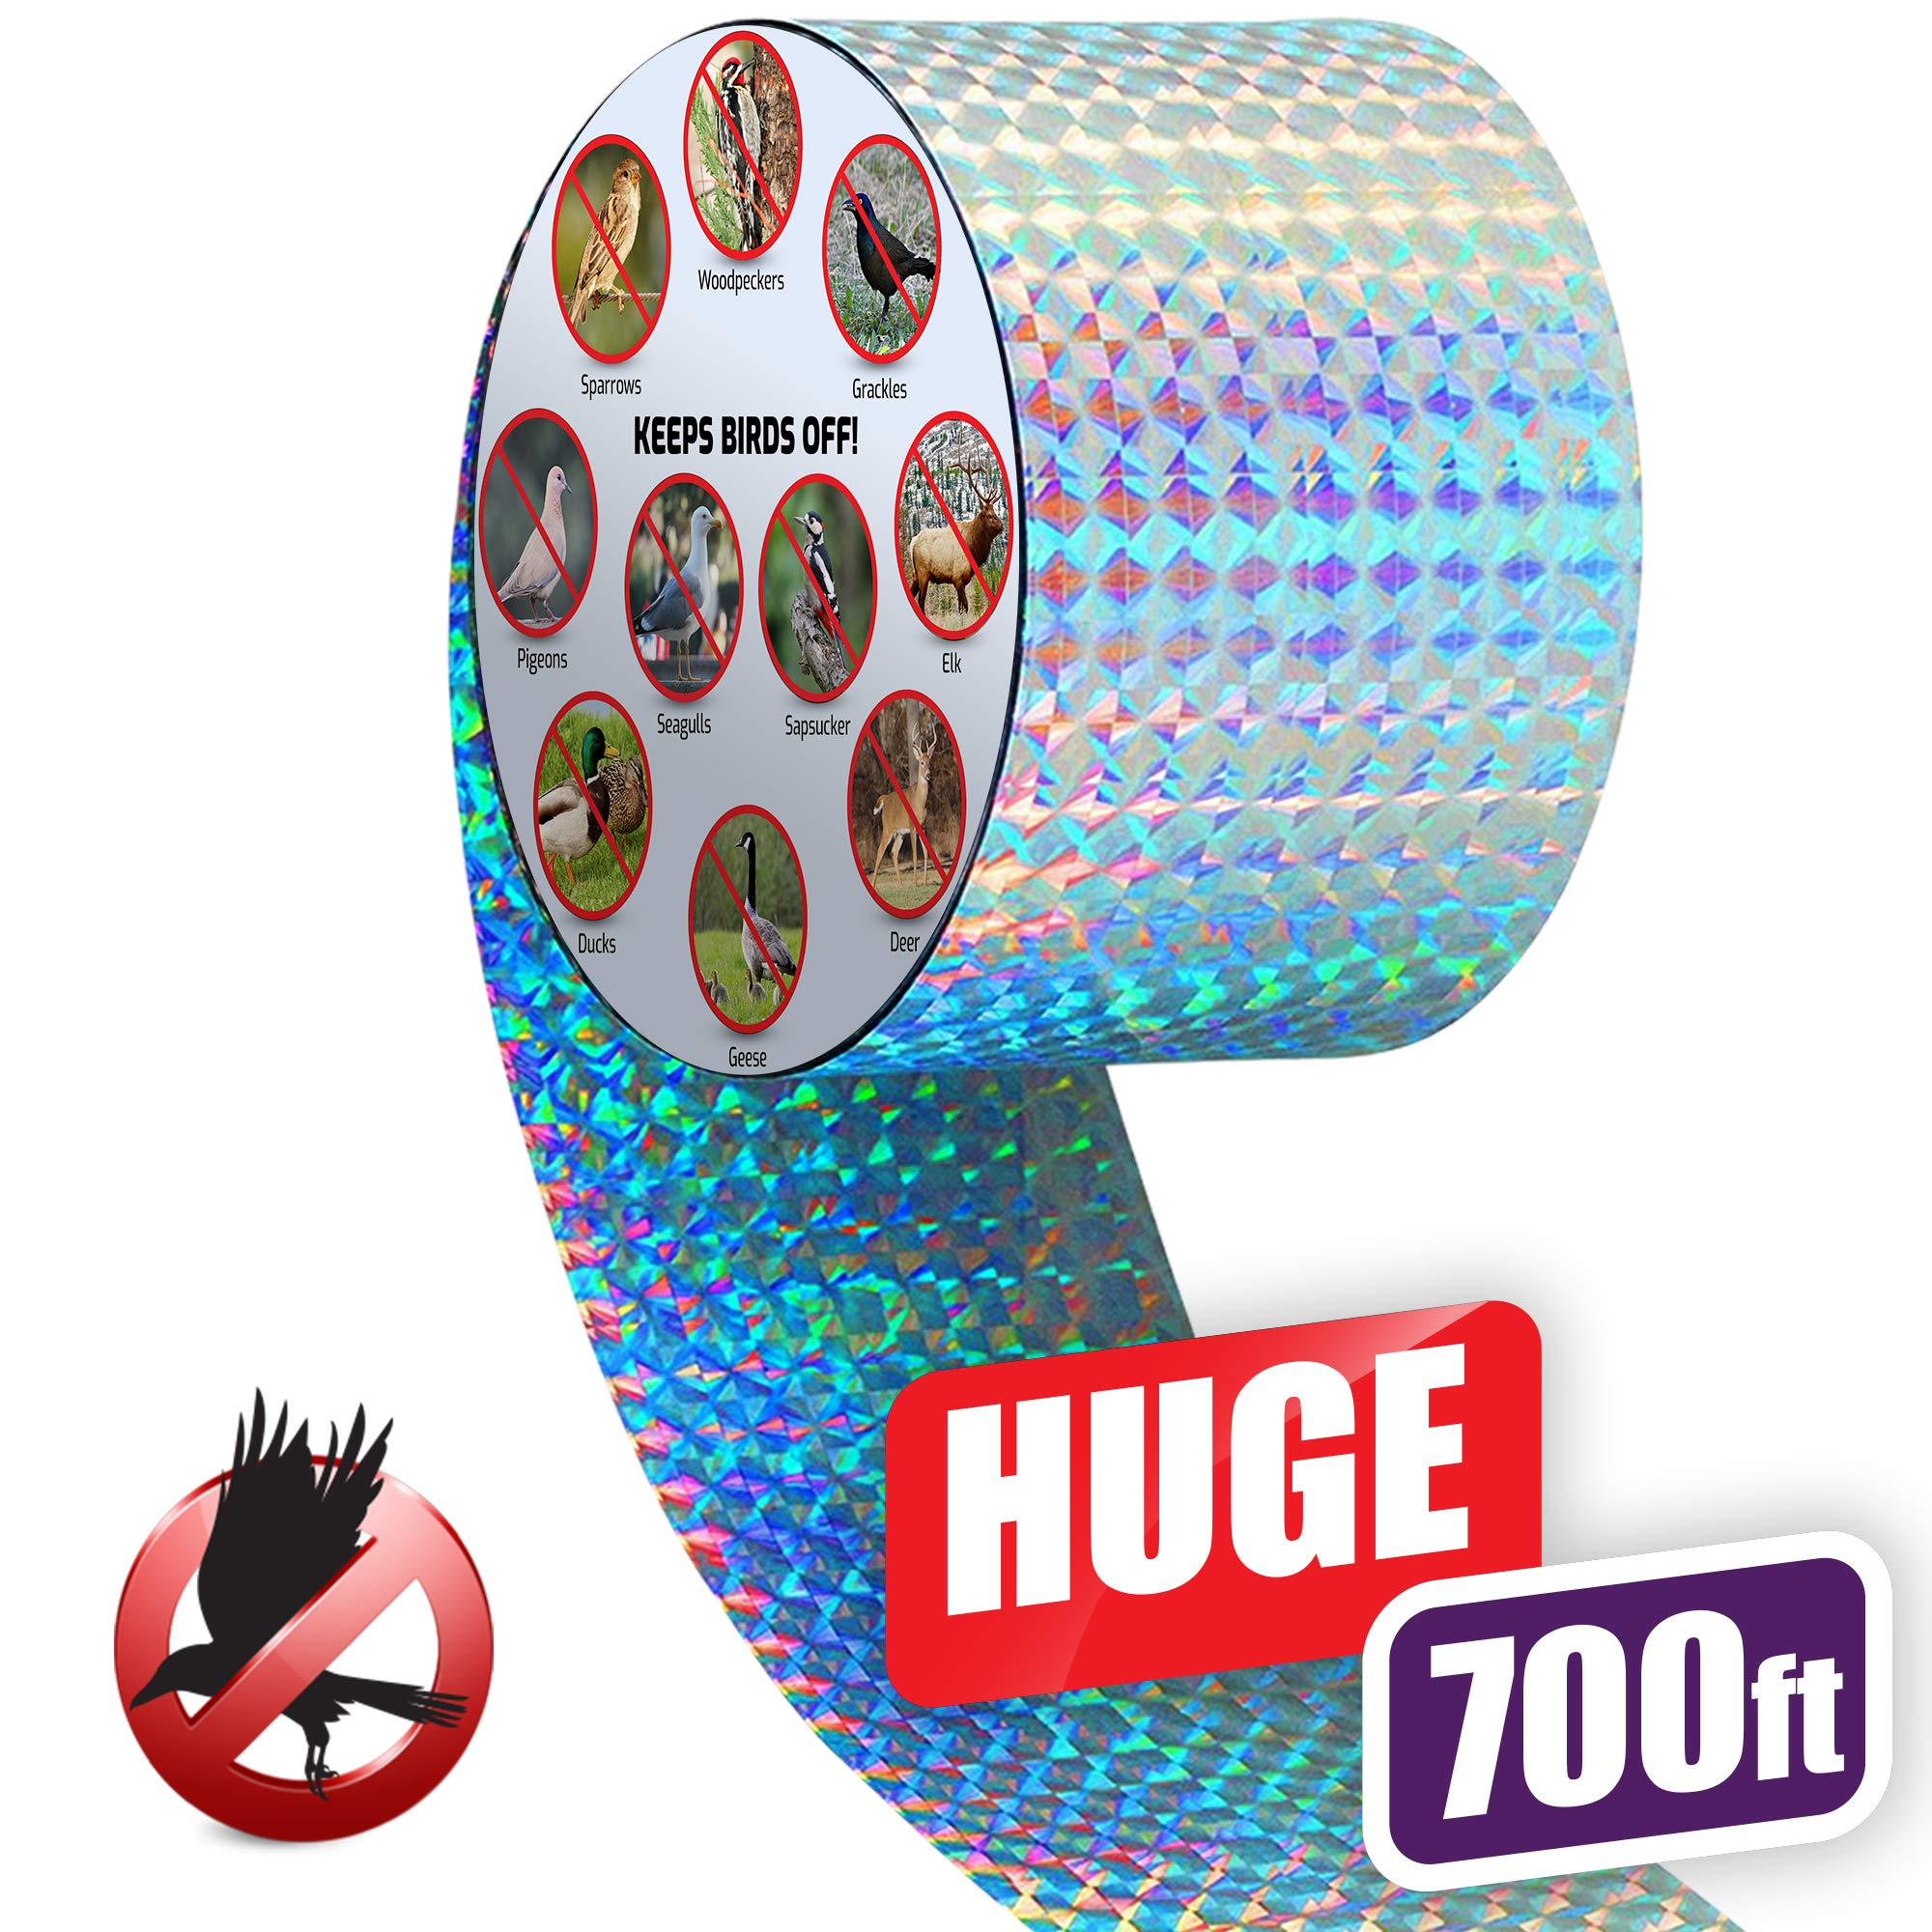 Premium Quality Bird Deterrent Reflective Scare Tape Ribbon 700 ft Long - Pest Control Dual-sided Repellent For Pigeons, Grackles, Woodpeckers, Geese, Herons, Blackbirds & More - Sturdy & Ultra Strong by BRITENWAY